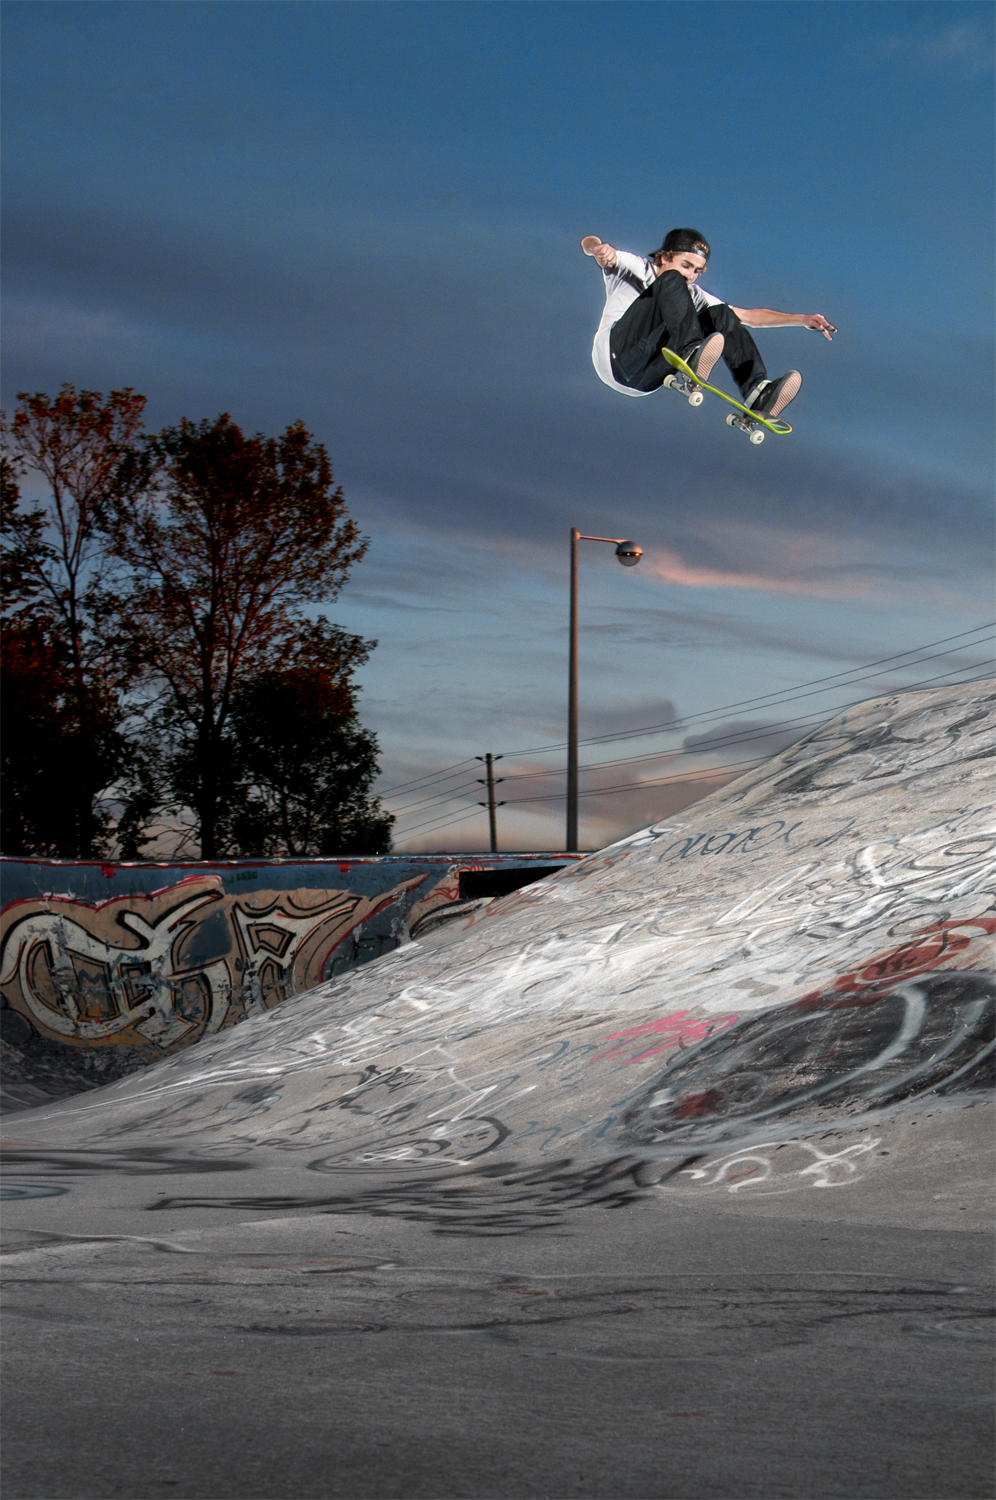 Sam Lind, Frontside Flip, Ottawa, ON 2012